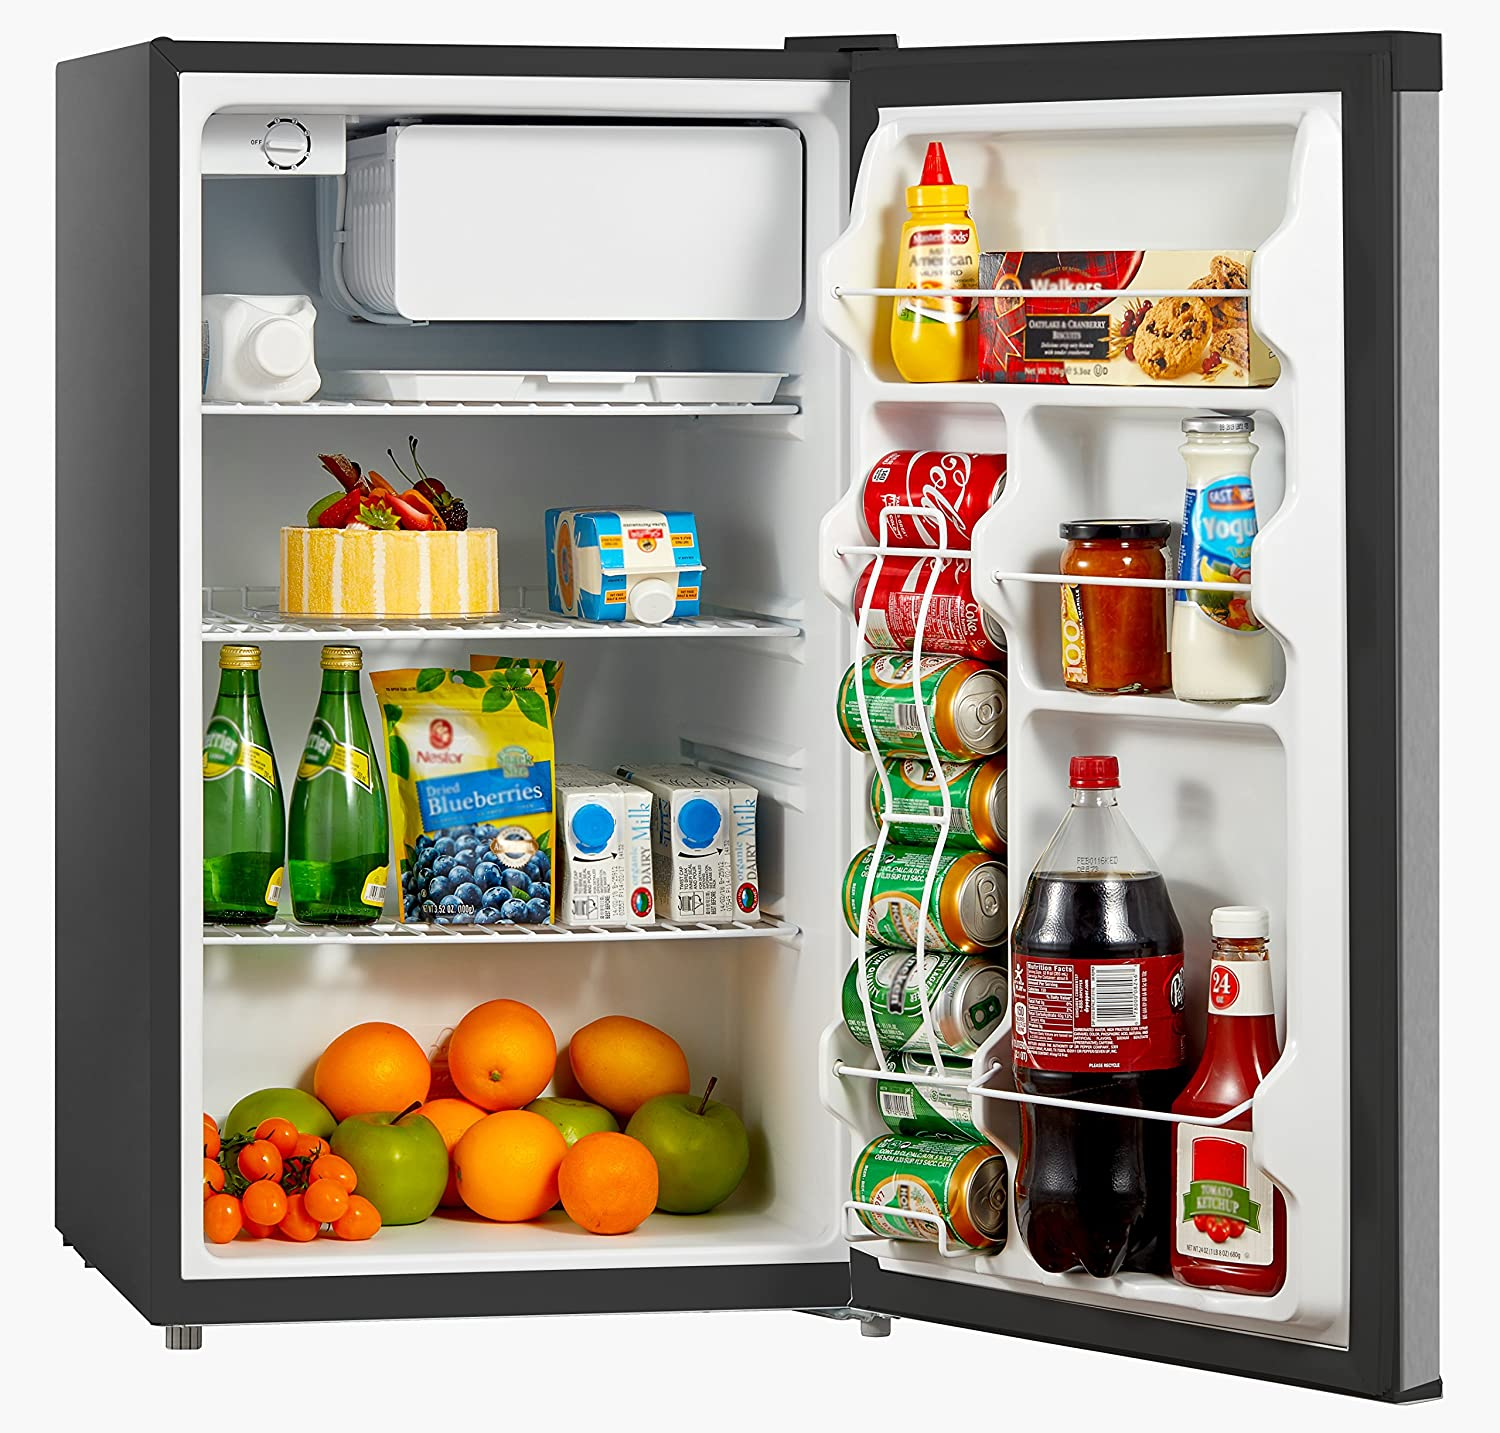 Midea stainless steel compact single reversible door upright freezers - Amazon Com Midea Whs 160rss1 Compact Single Reversible Door Refrigerator And Freezer 4 4 Cubic Feet Stainless Steel Appliances